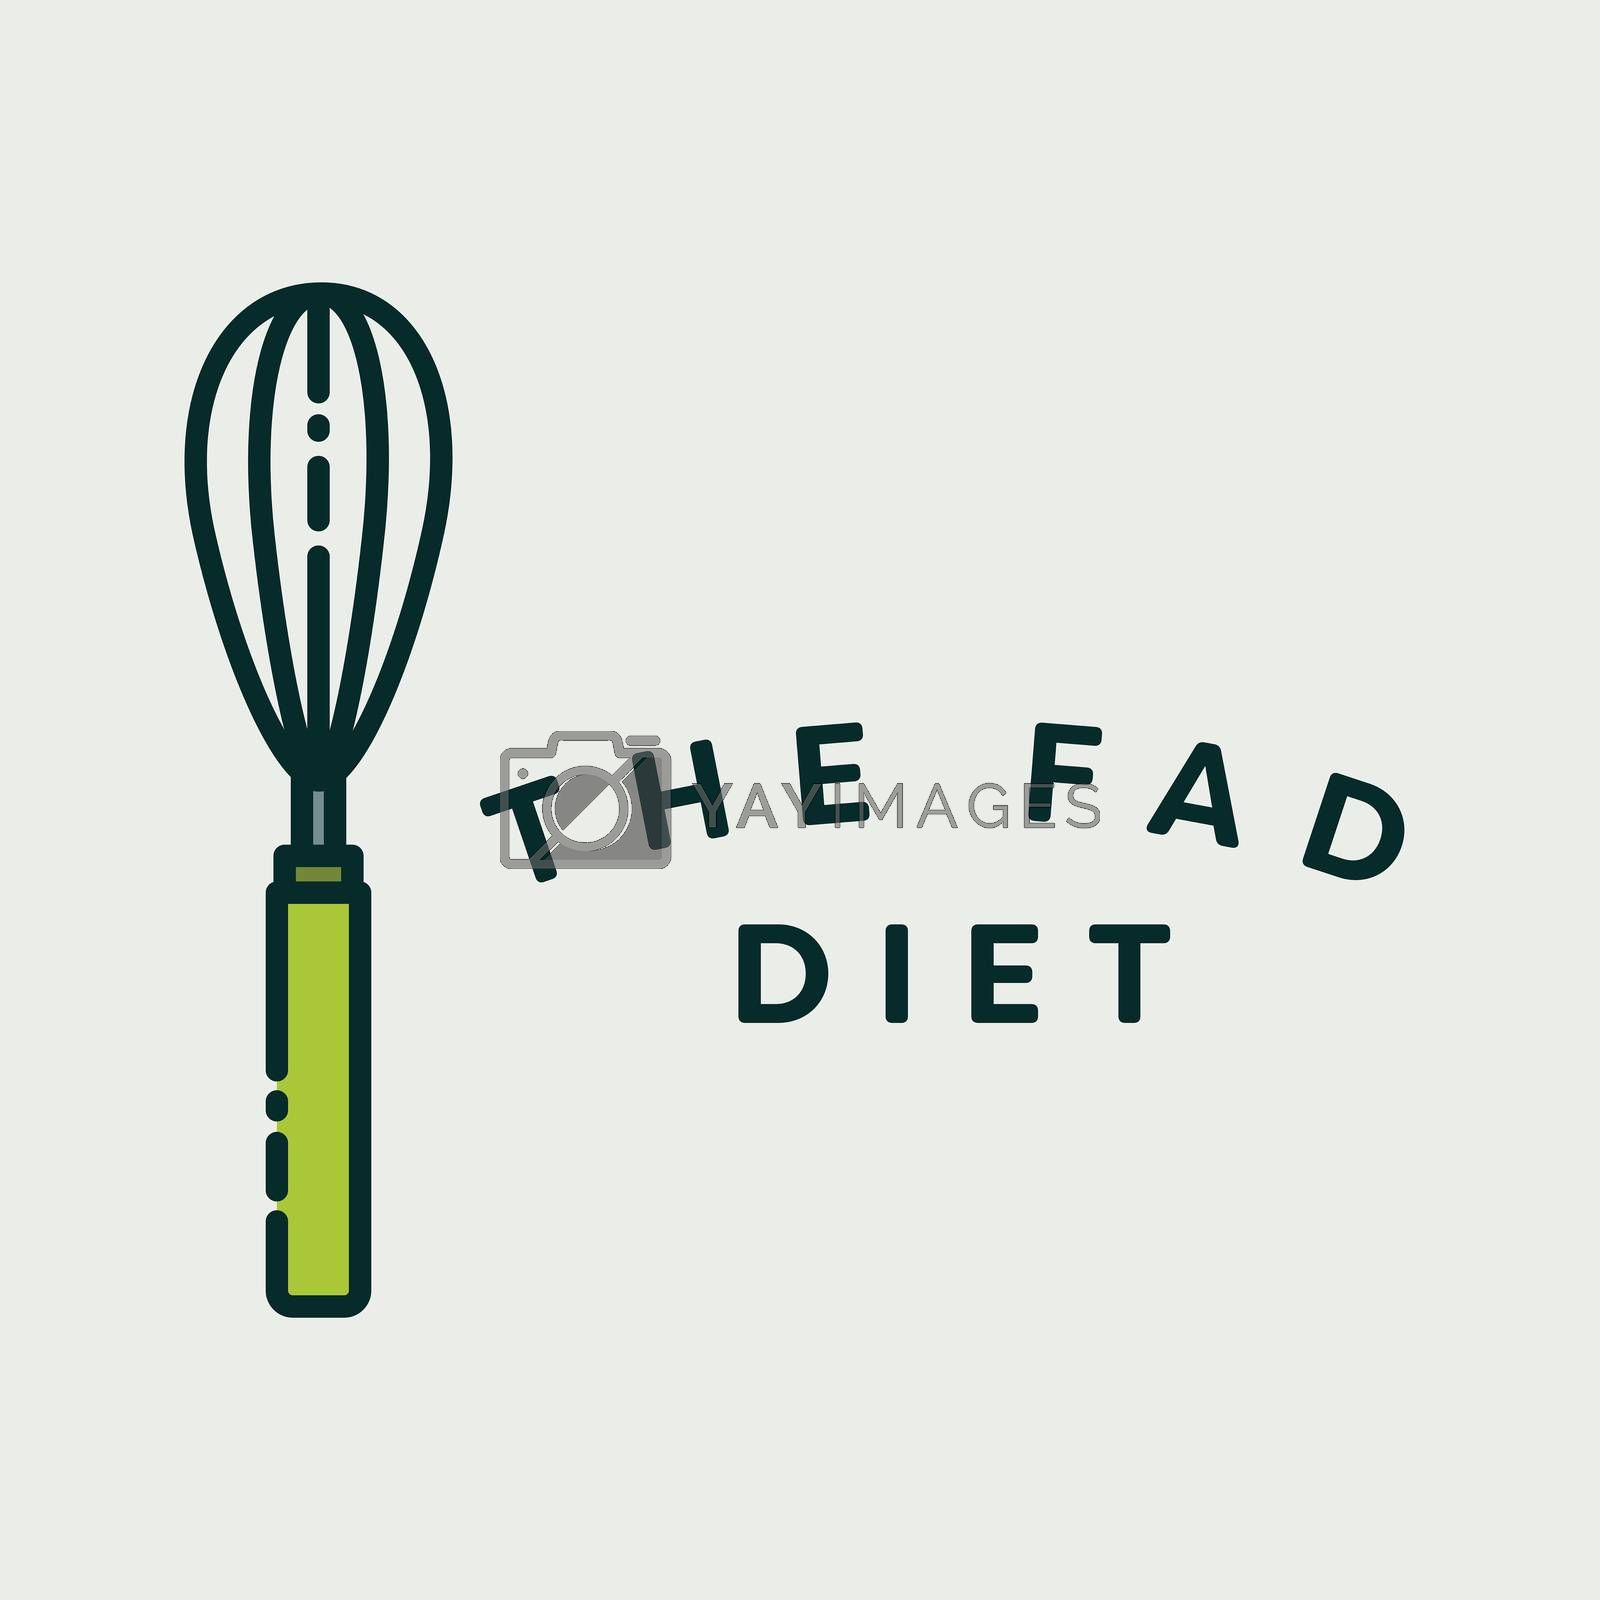 Vector image of egg beater with text fad diet against white background